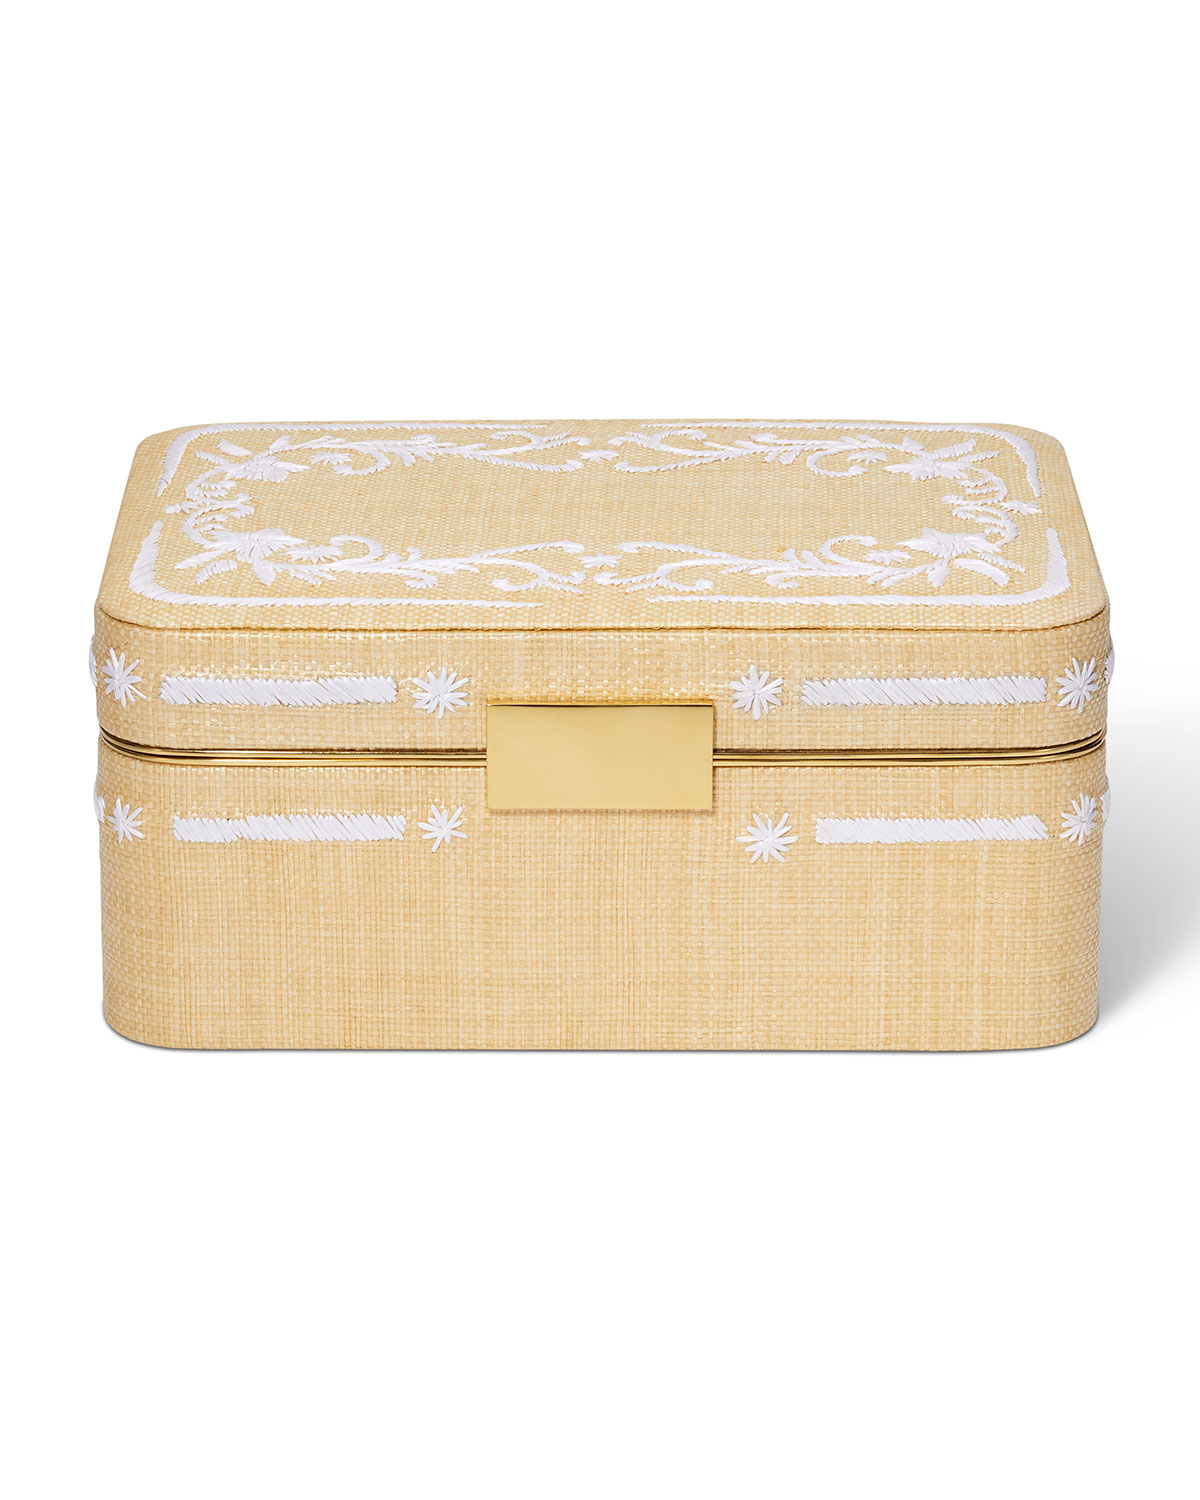 AERIN Beauvais Embroidered Raffia Jewelry Box